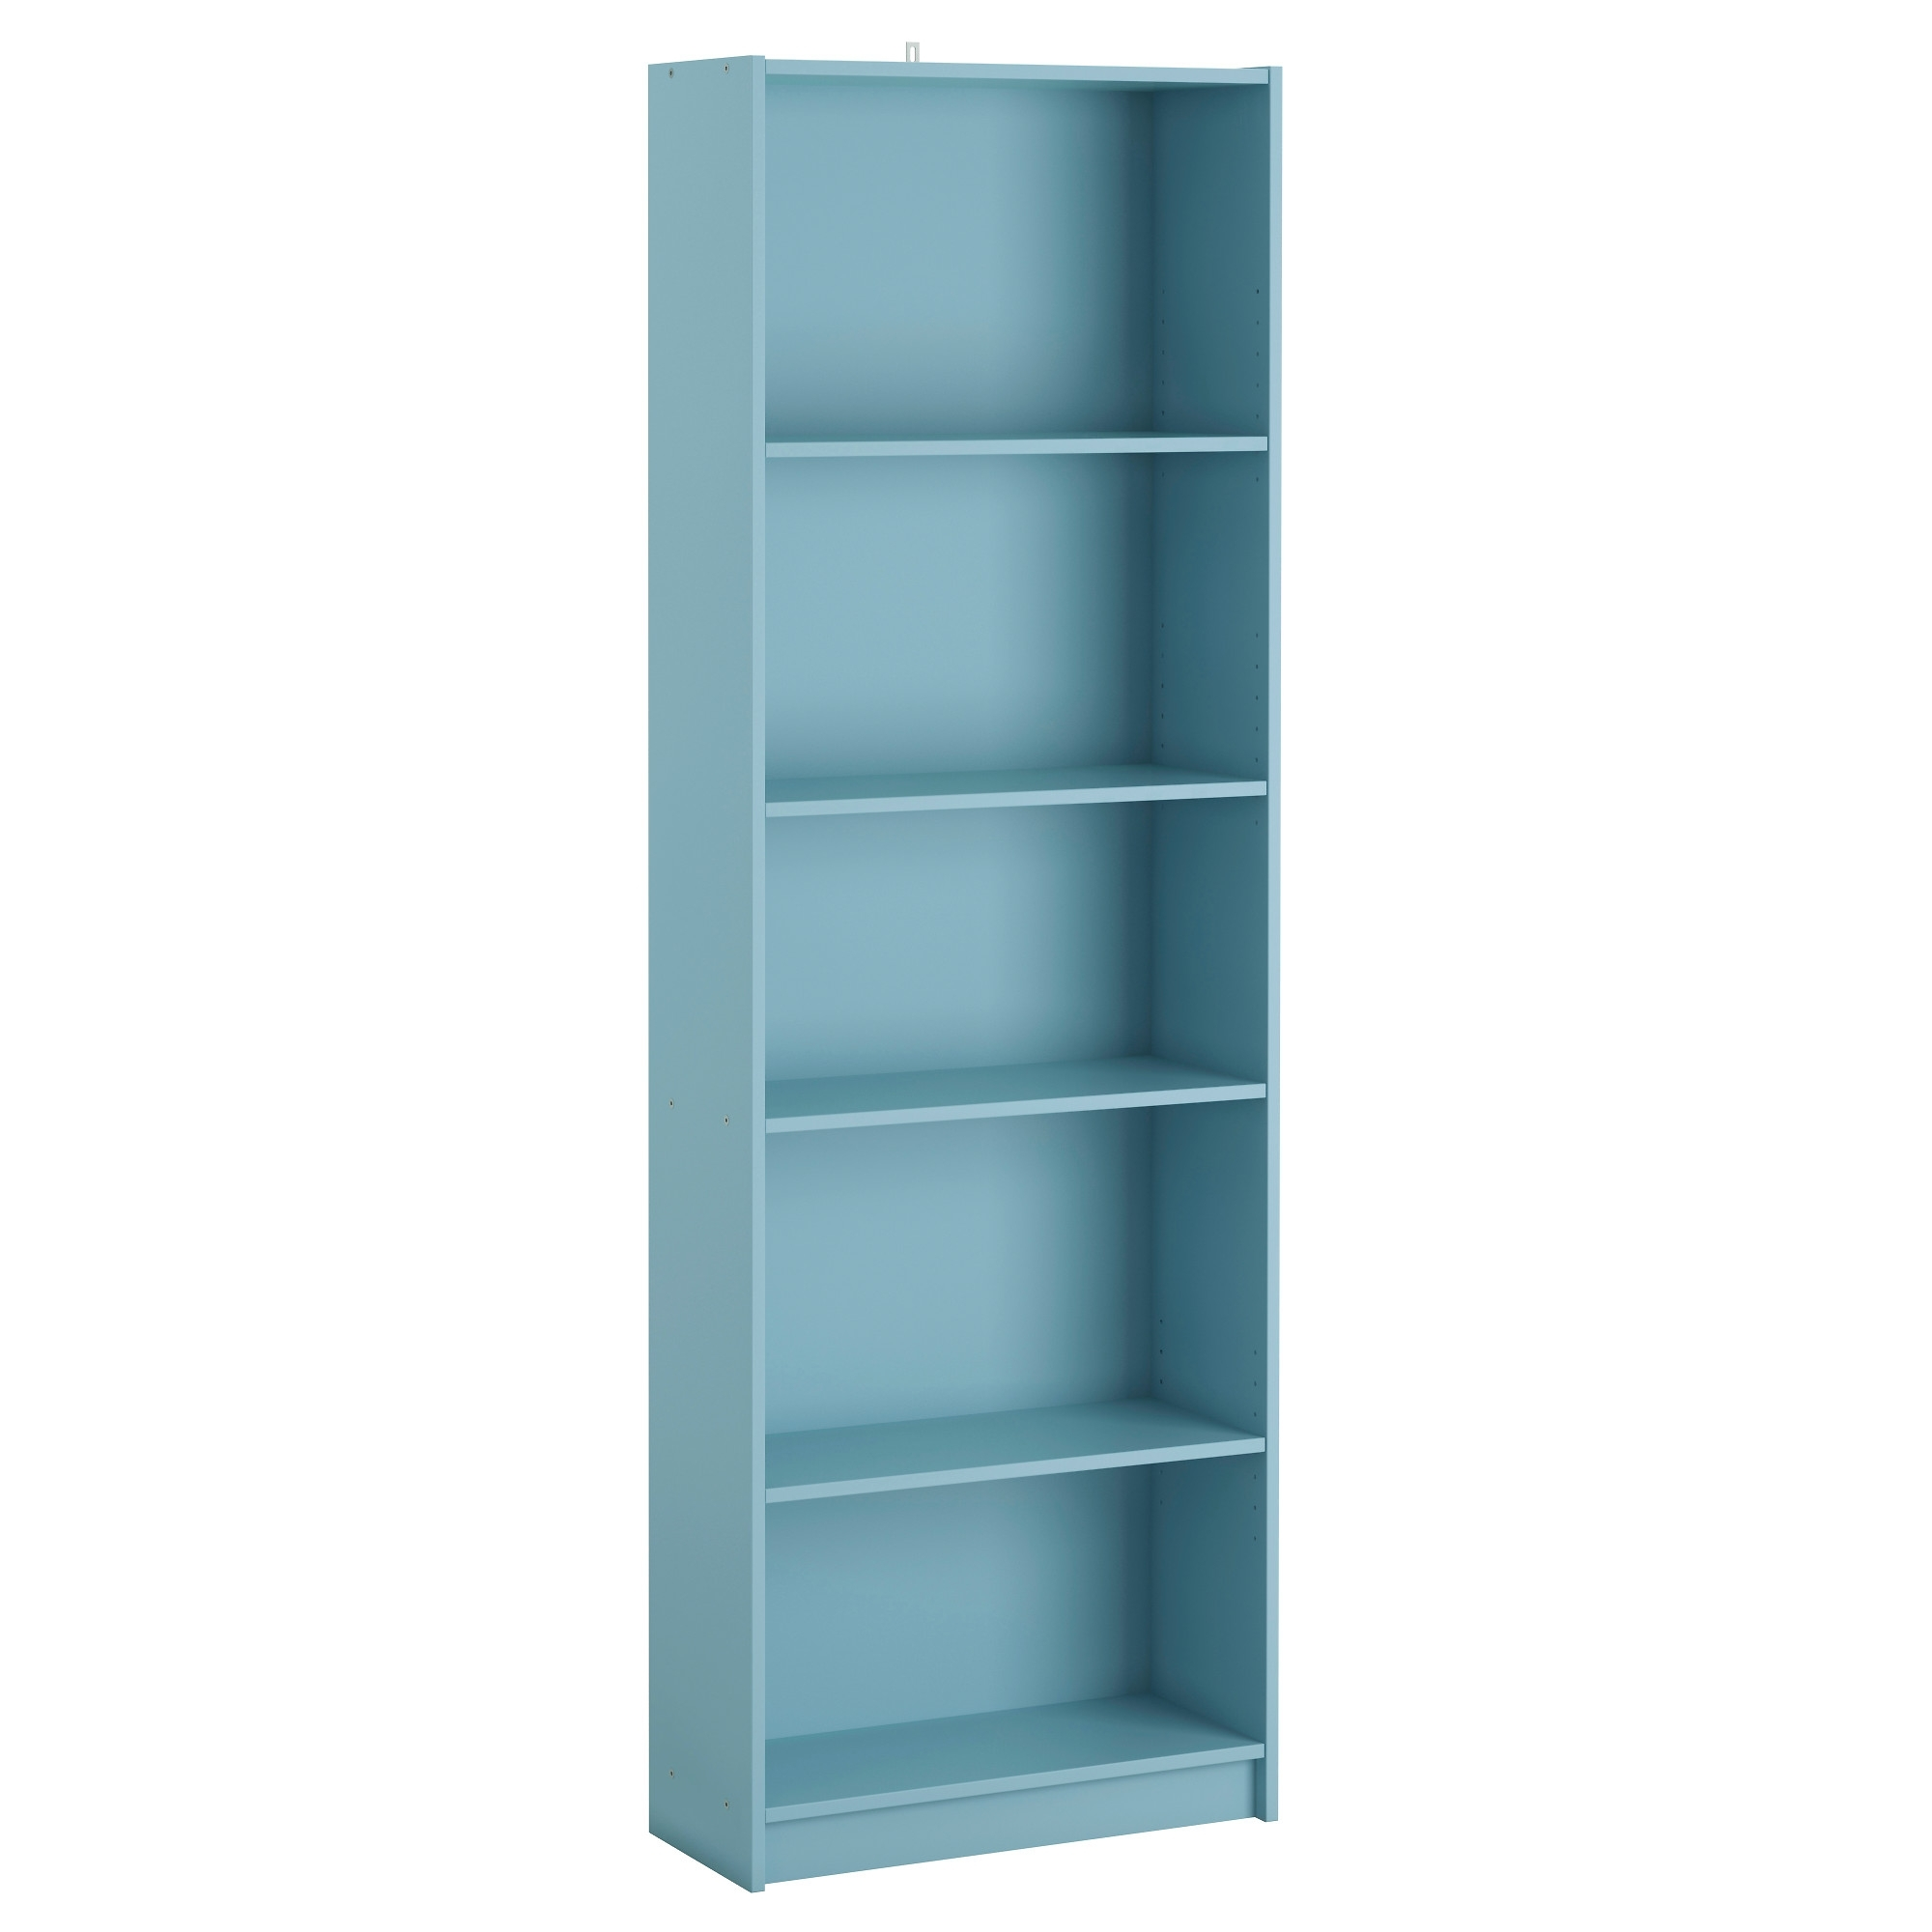 Furniture Home: Billy Bookcase With Glass Doors Dark Blue Ikea In Well Known Blue Bookcases (View 8 of 15)